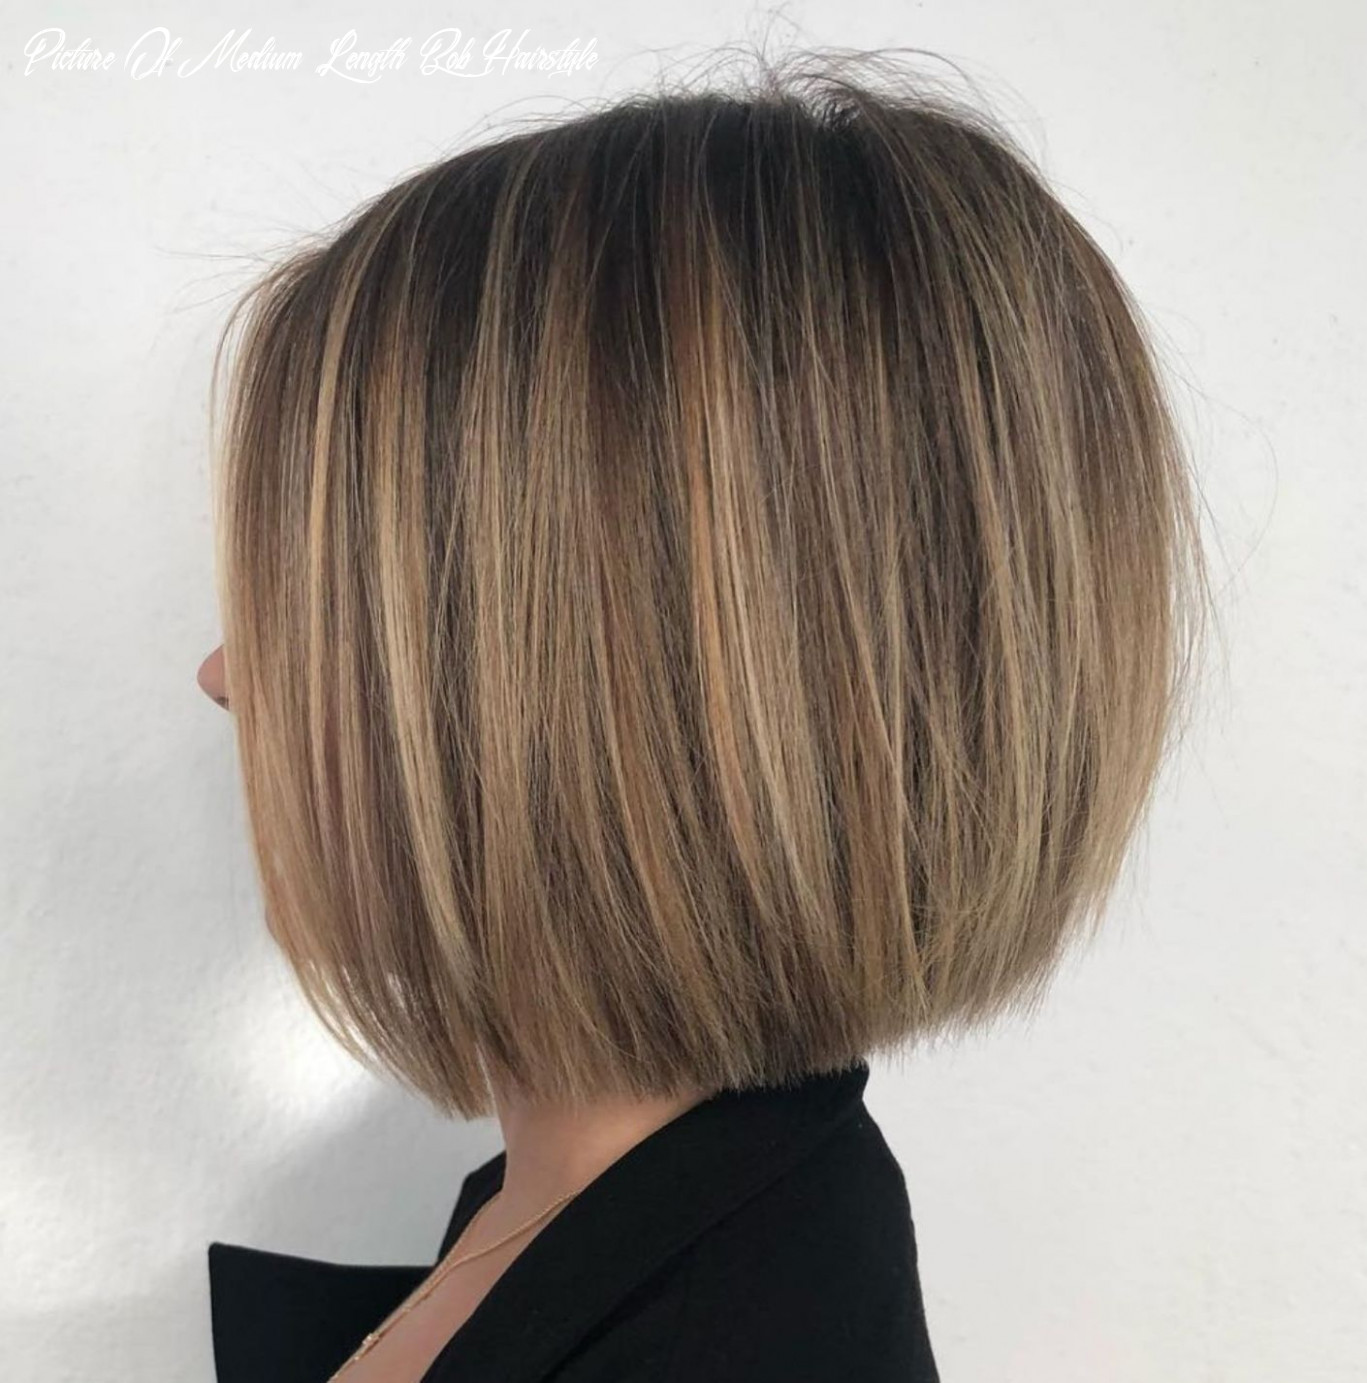 Pin on hair picture of medium length bob hairstyle